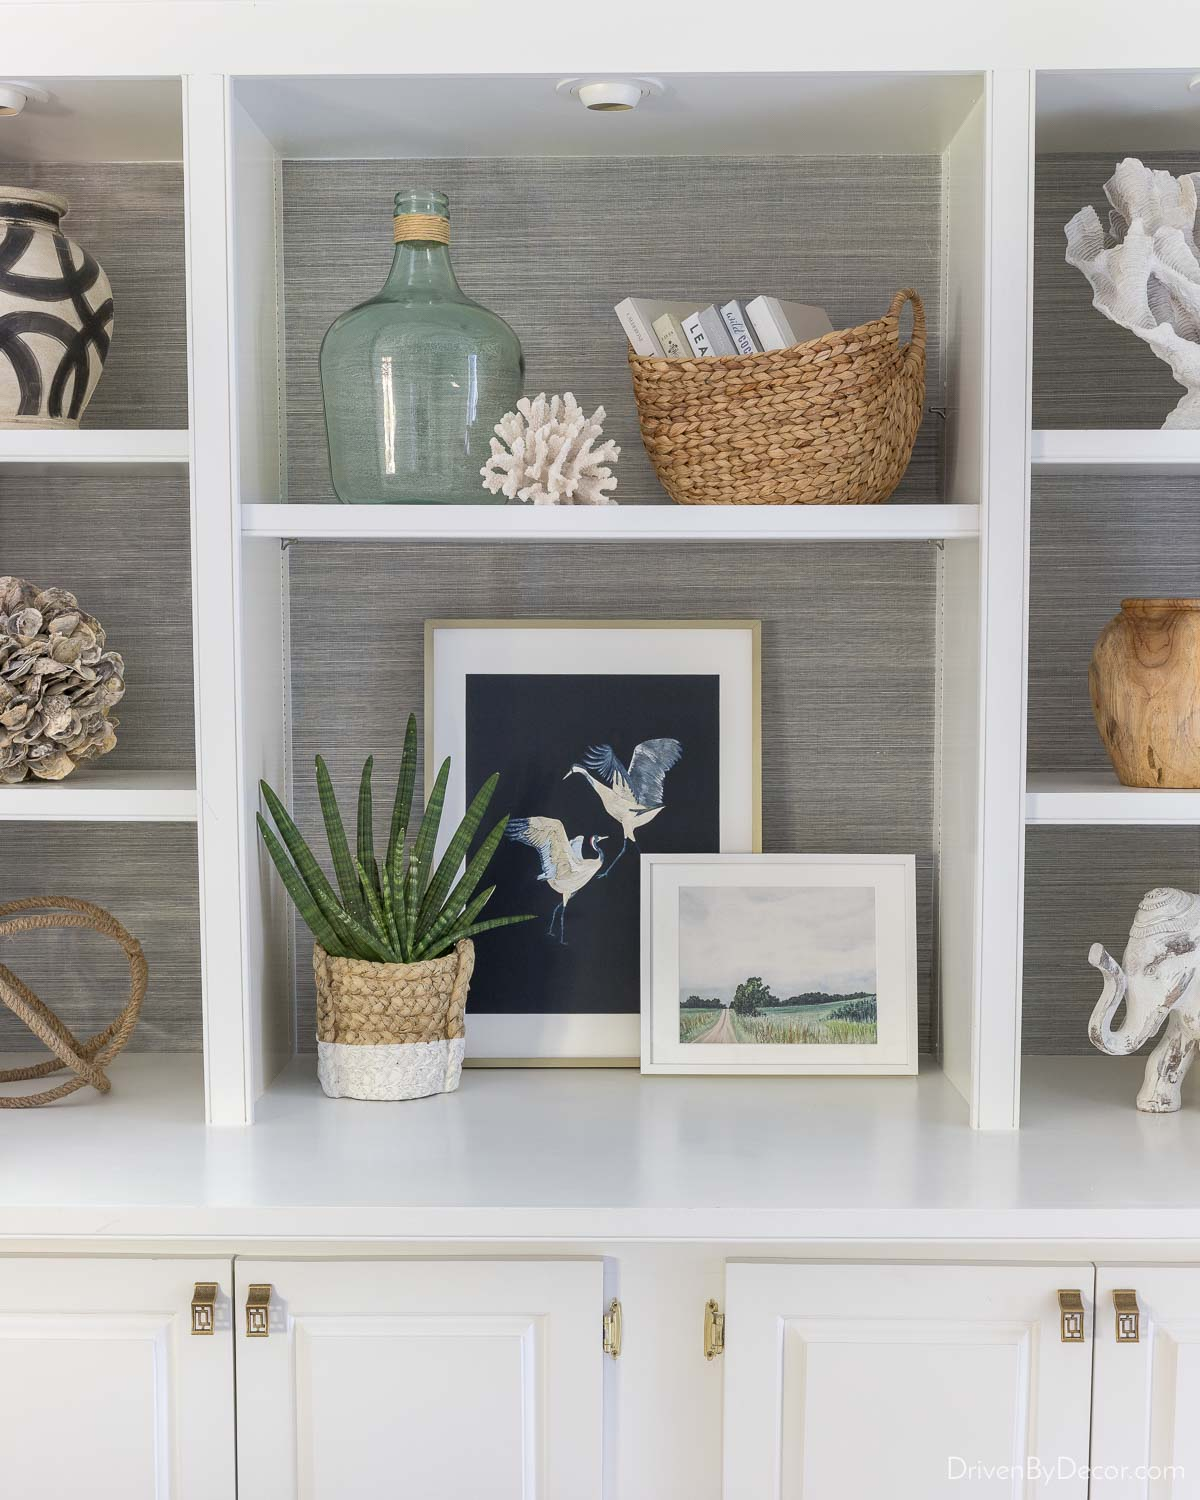 Charcoal grasscloth wallpaper makes the decor pieces on this bookcase pop!